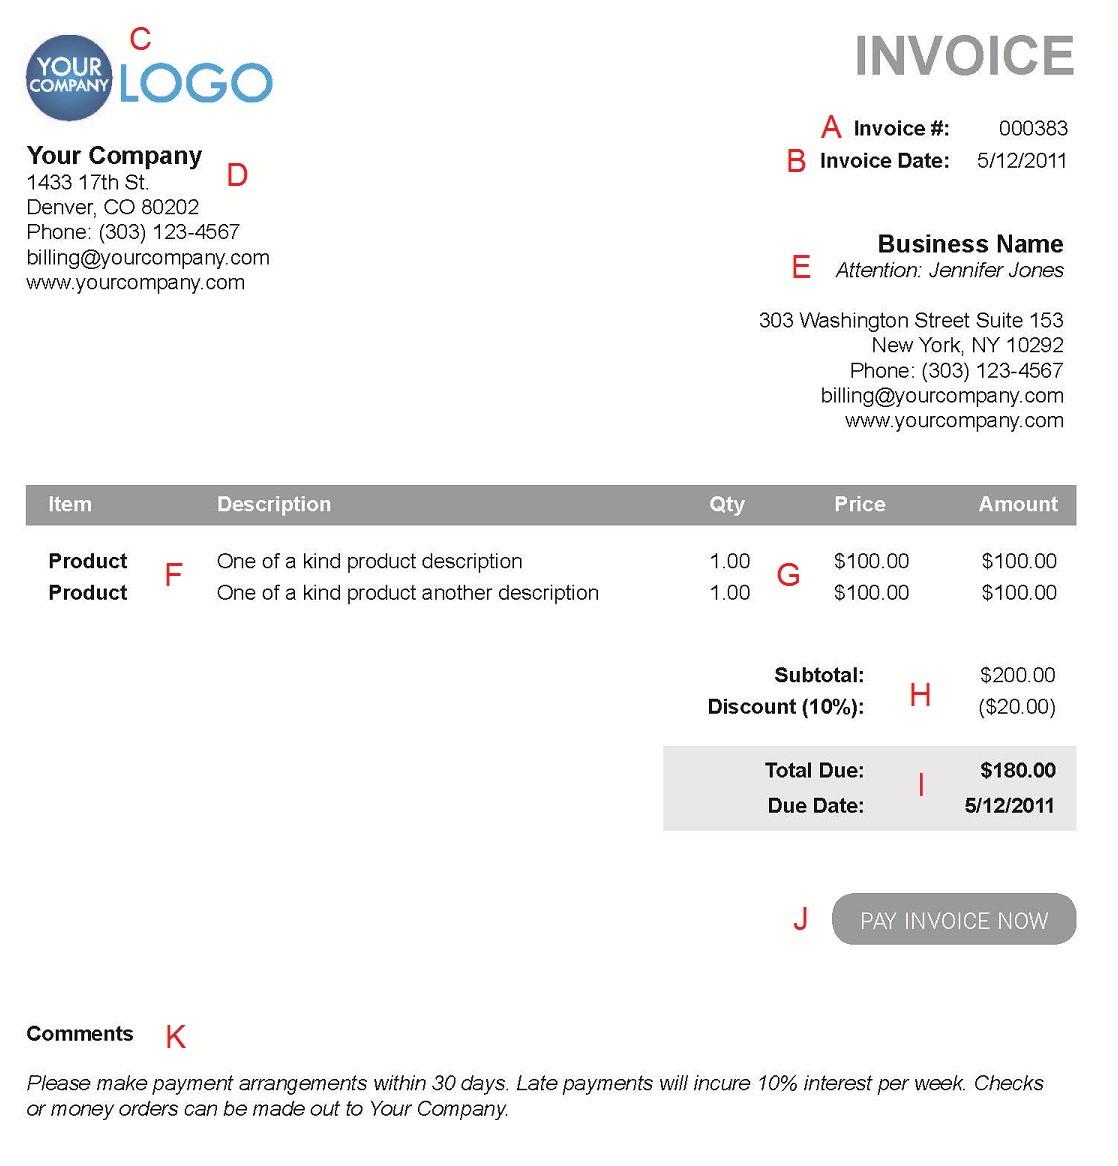 Coolmathgamesus  Terrific The  Different Sections Of An Electronic Payment Invoice With Goodlooking A  With Endearing Cost Invoice Also Invoice Department In Addition Tax Invoice Template Australia Word And Invoice  Way Match As Well As Rental Invoice Template Free Additionally Personalised Duplicate Invoice Books From Paysimplecom With Coolmathgamesus  Goodlooking The  Different Sections Of An Electronic Payment Invoice With Endearing A  And Terrific Cost Invoice Also Invoice Department In Addition Tax Invoice Template Australia Word From Paysimplecom